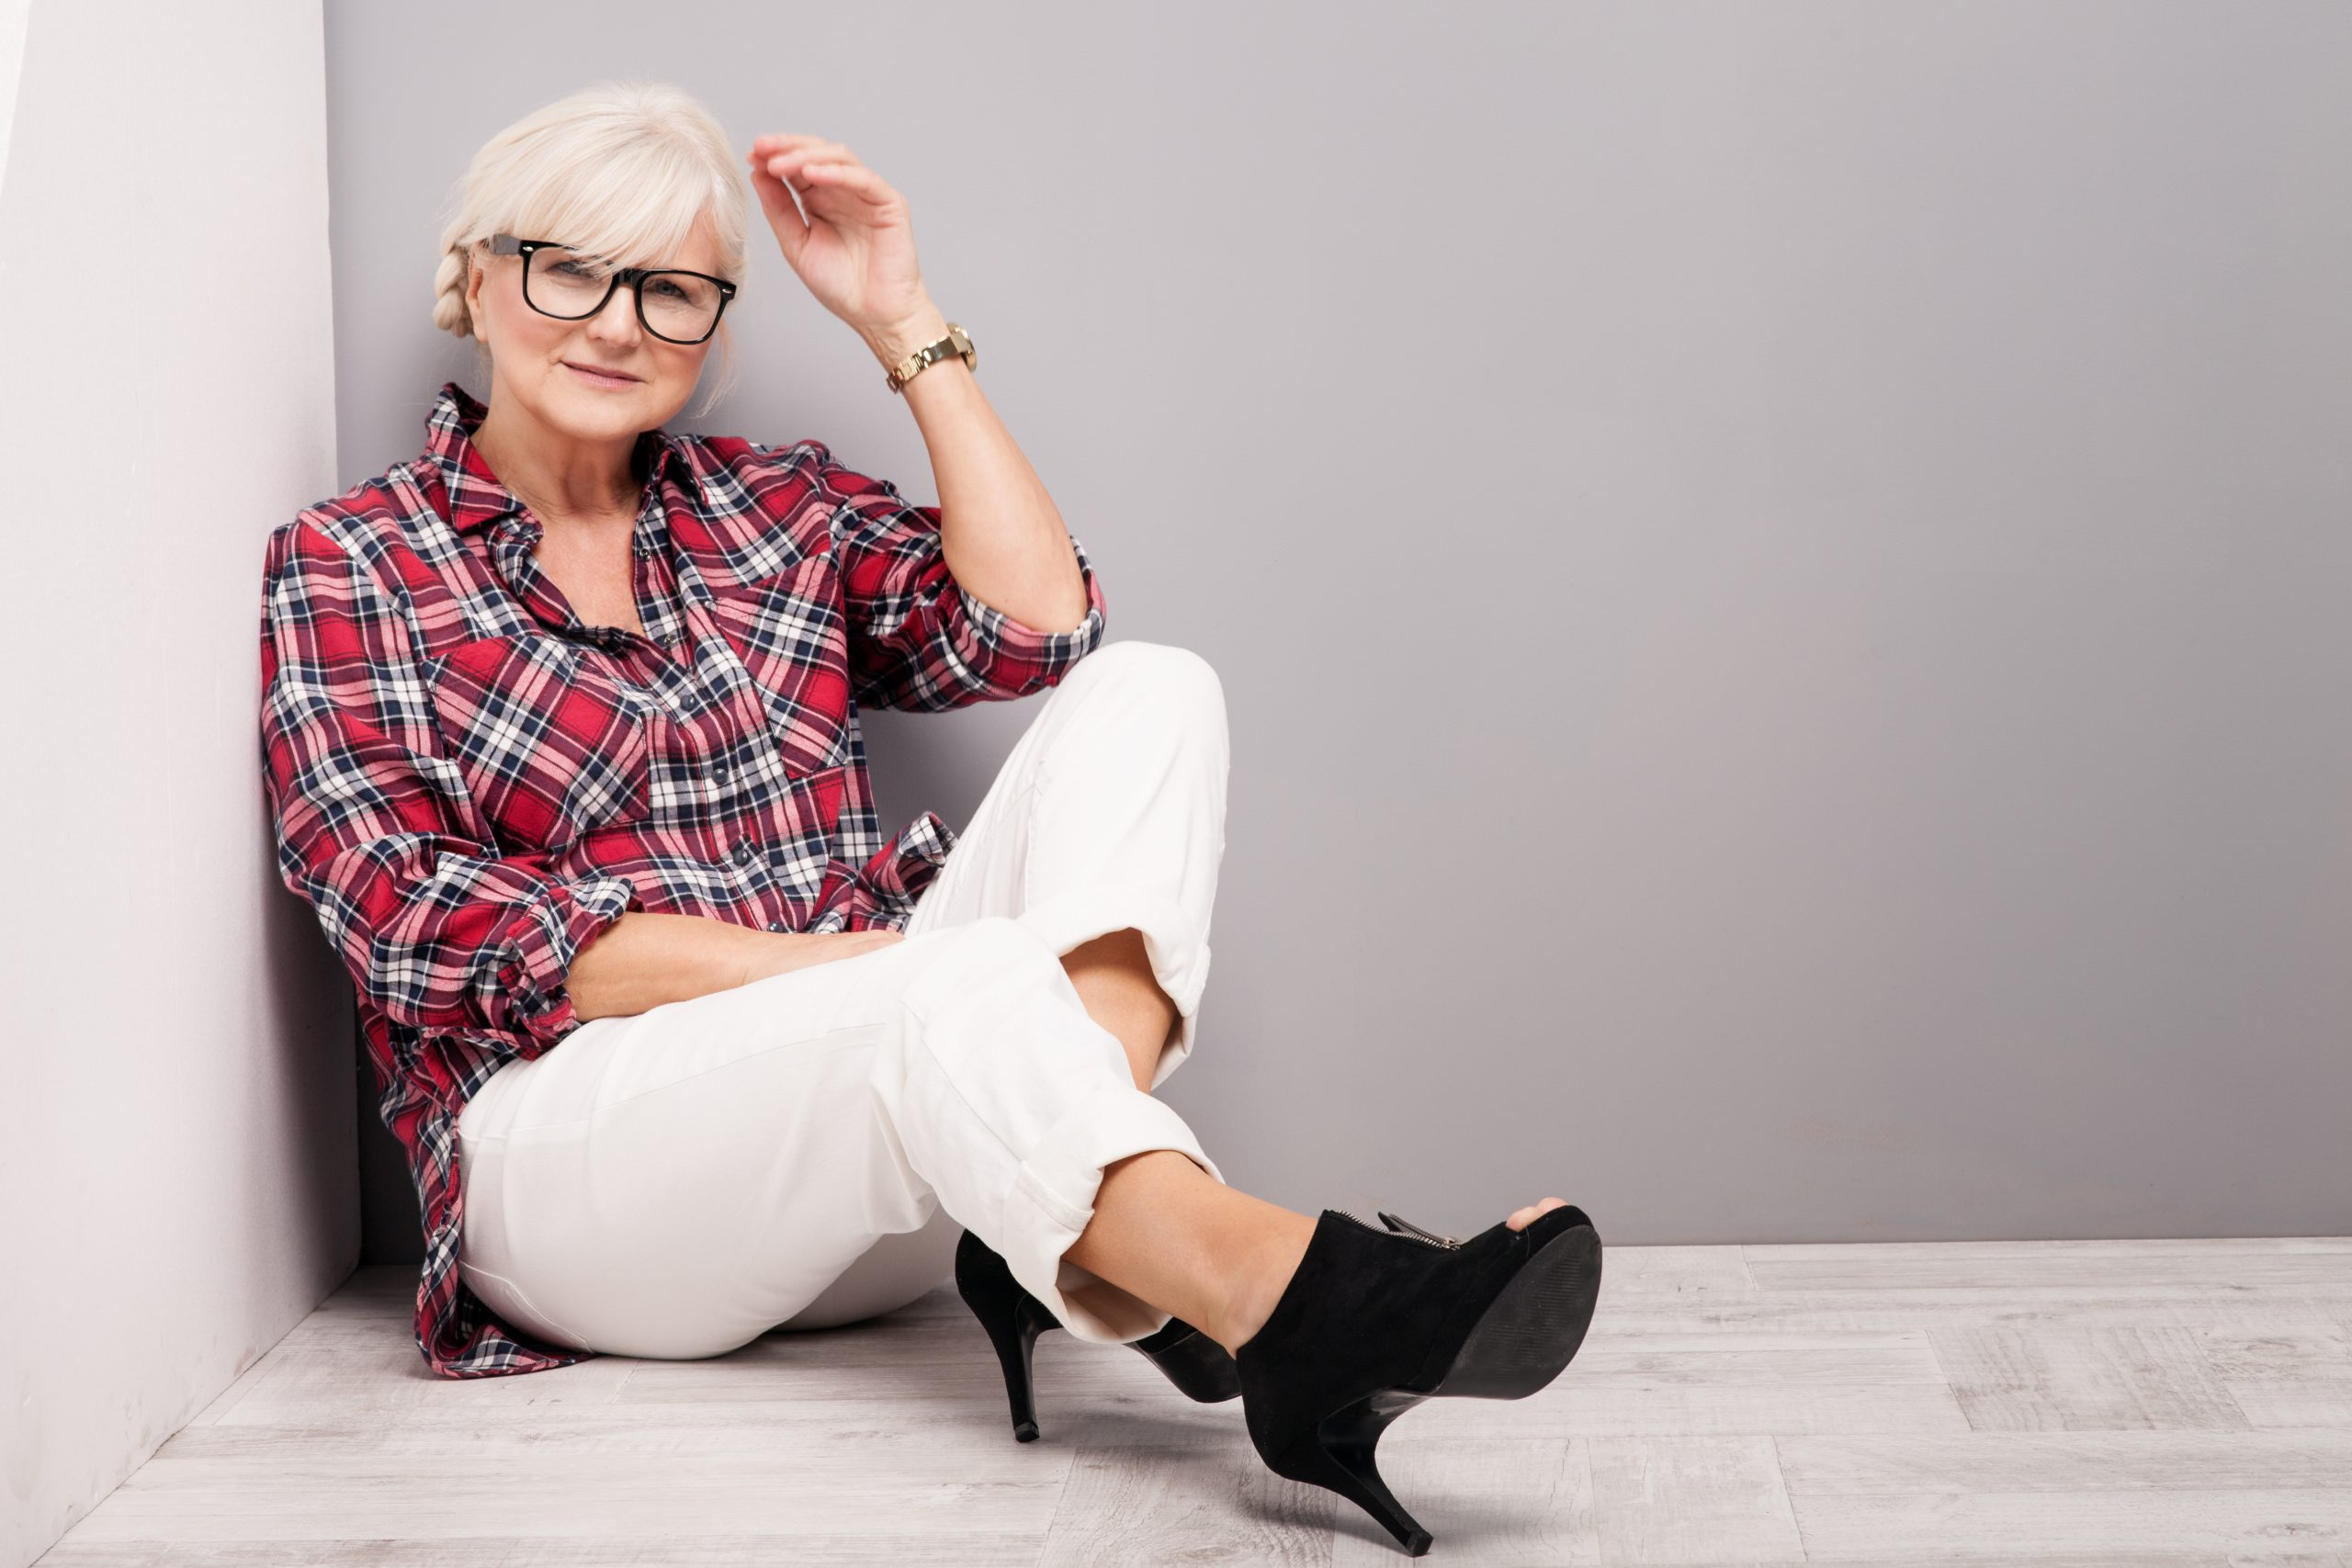 Middle aged menopausal woman with gray hair